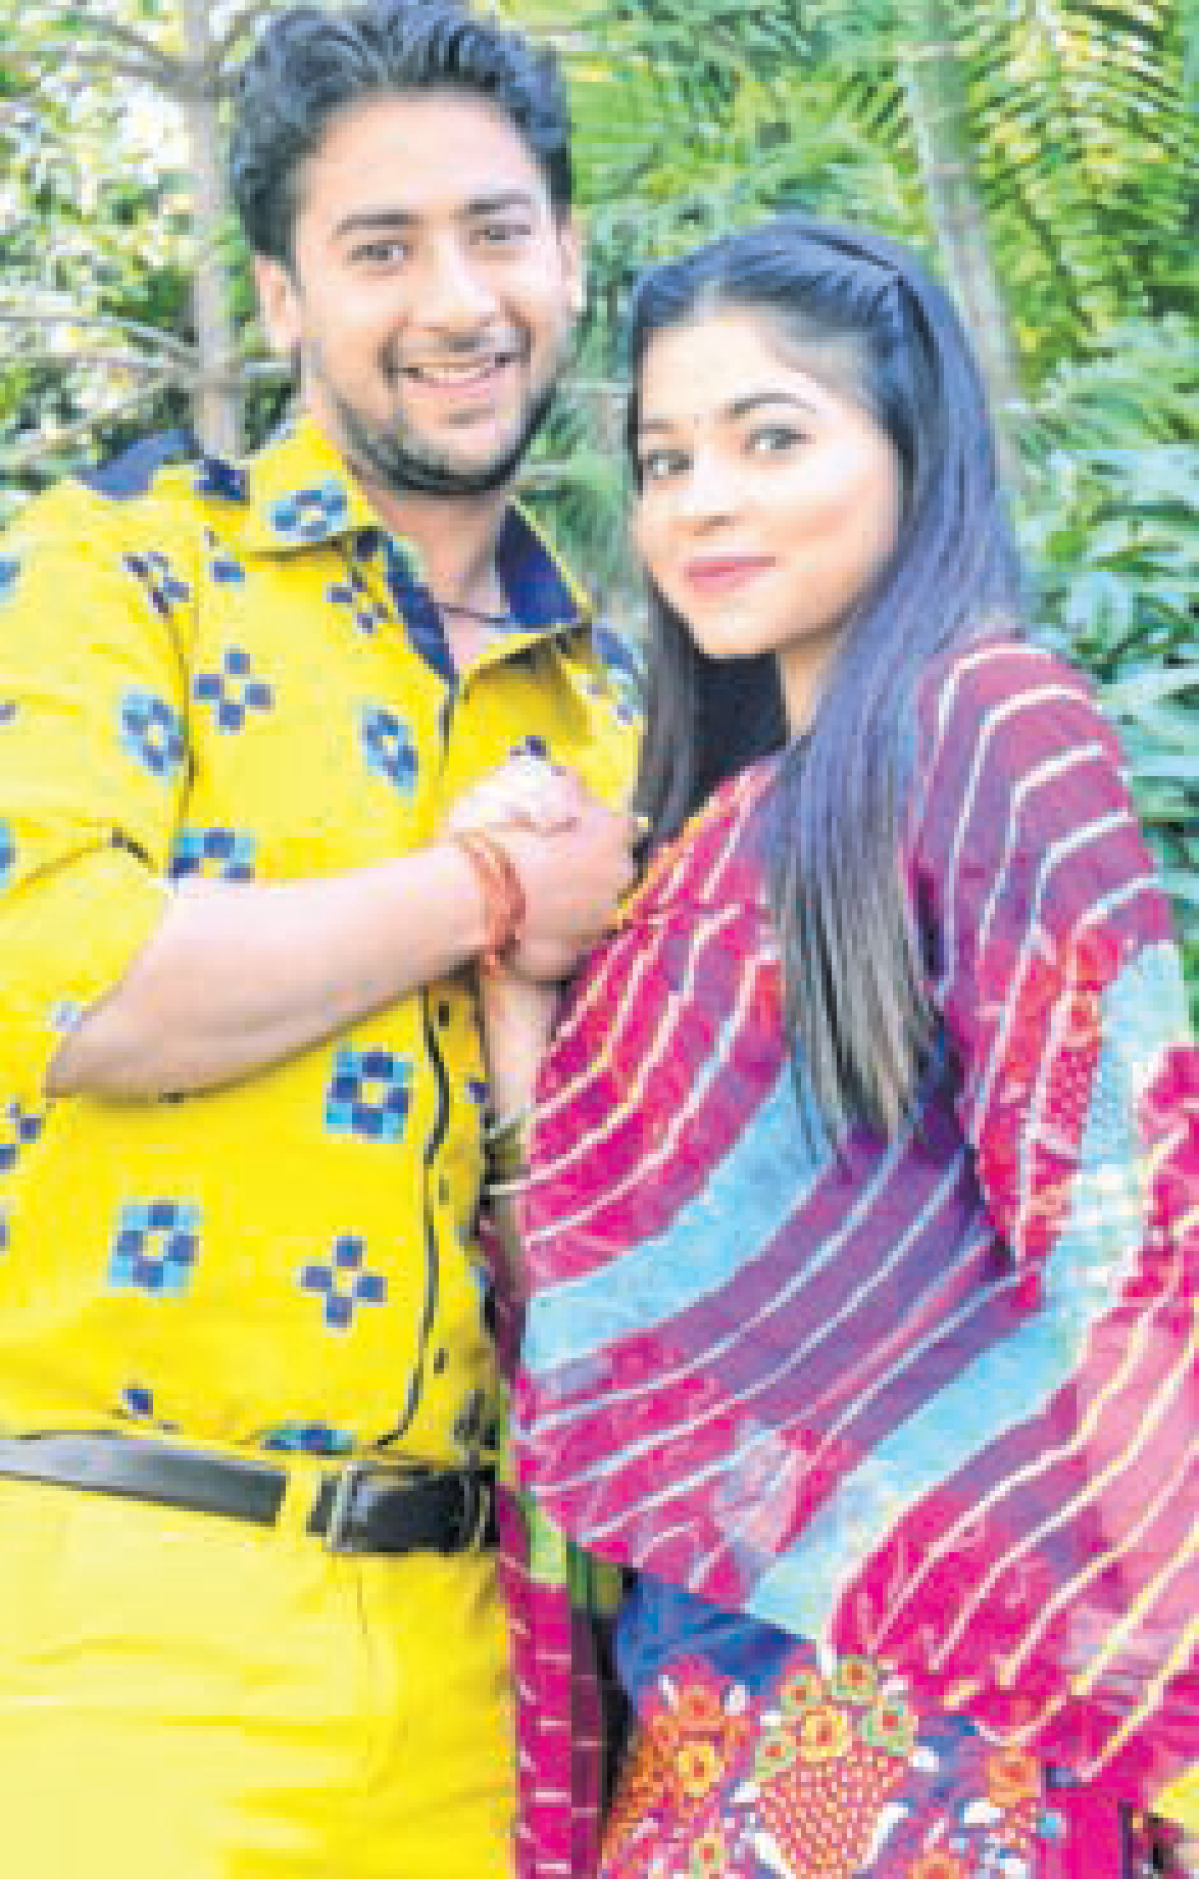 Bhopal: Paras & Shivani promote show in city